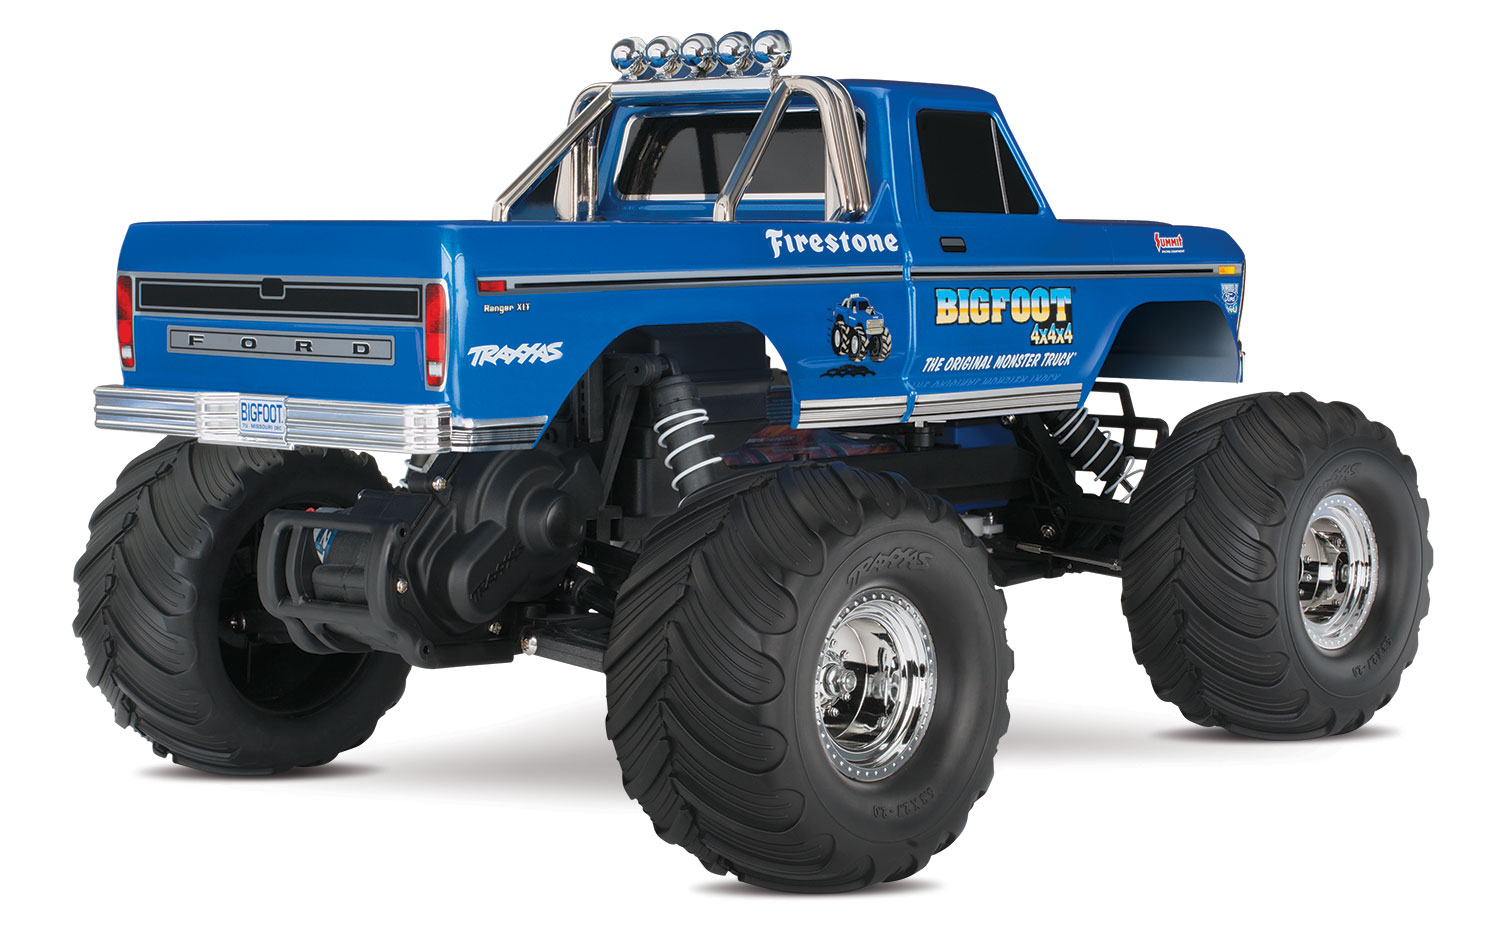 Traxxas Quot Bigfoot 1 Quot Original Monster Rtr 1 10 2wd Monster